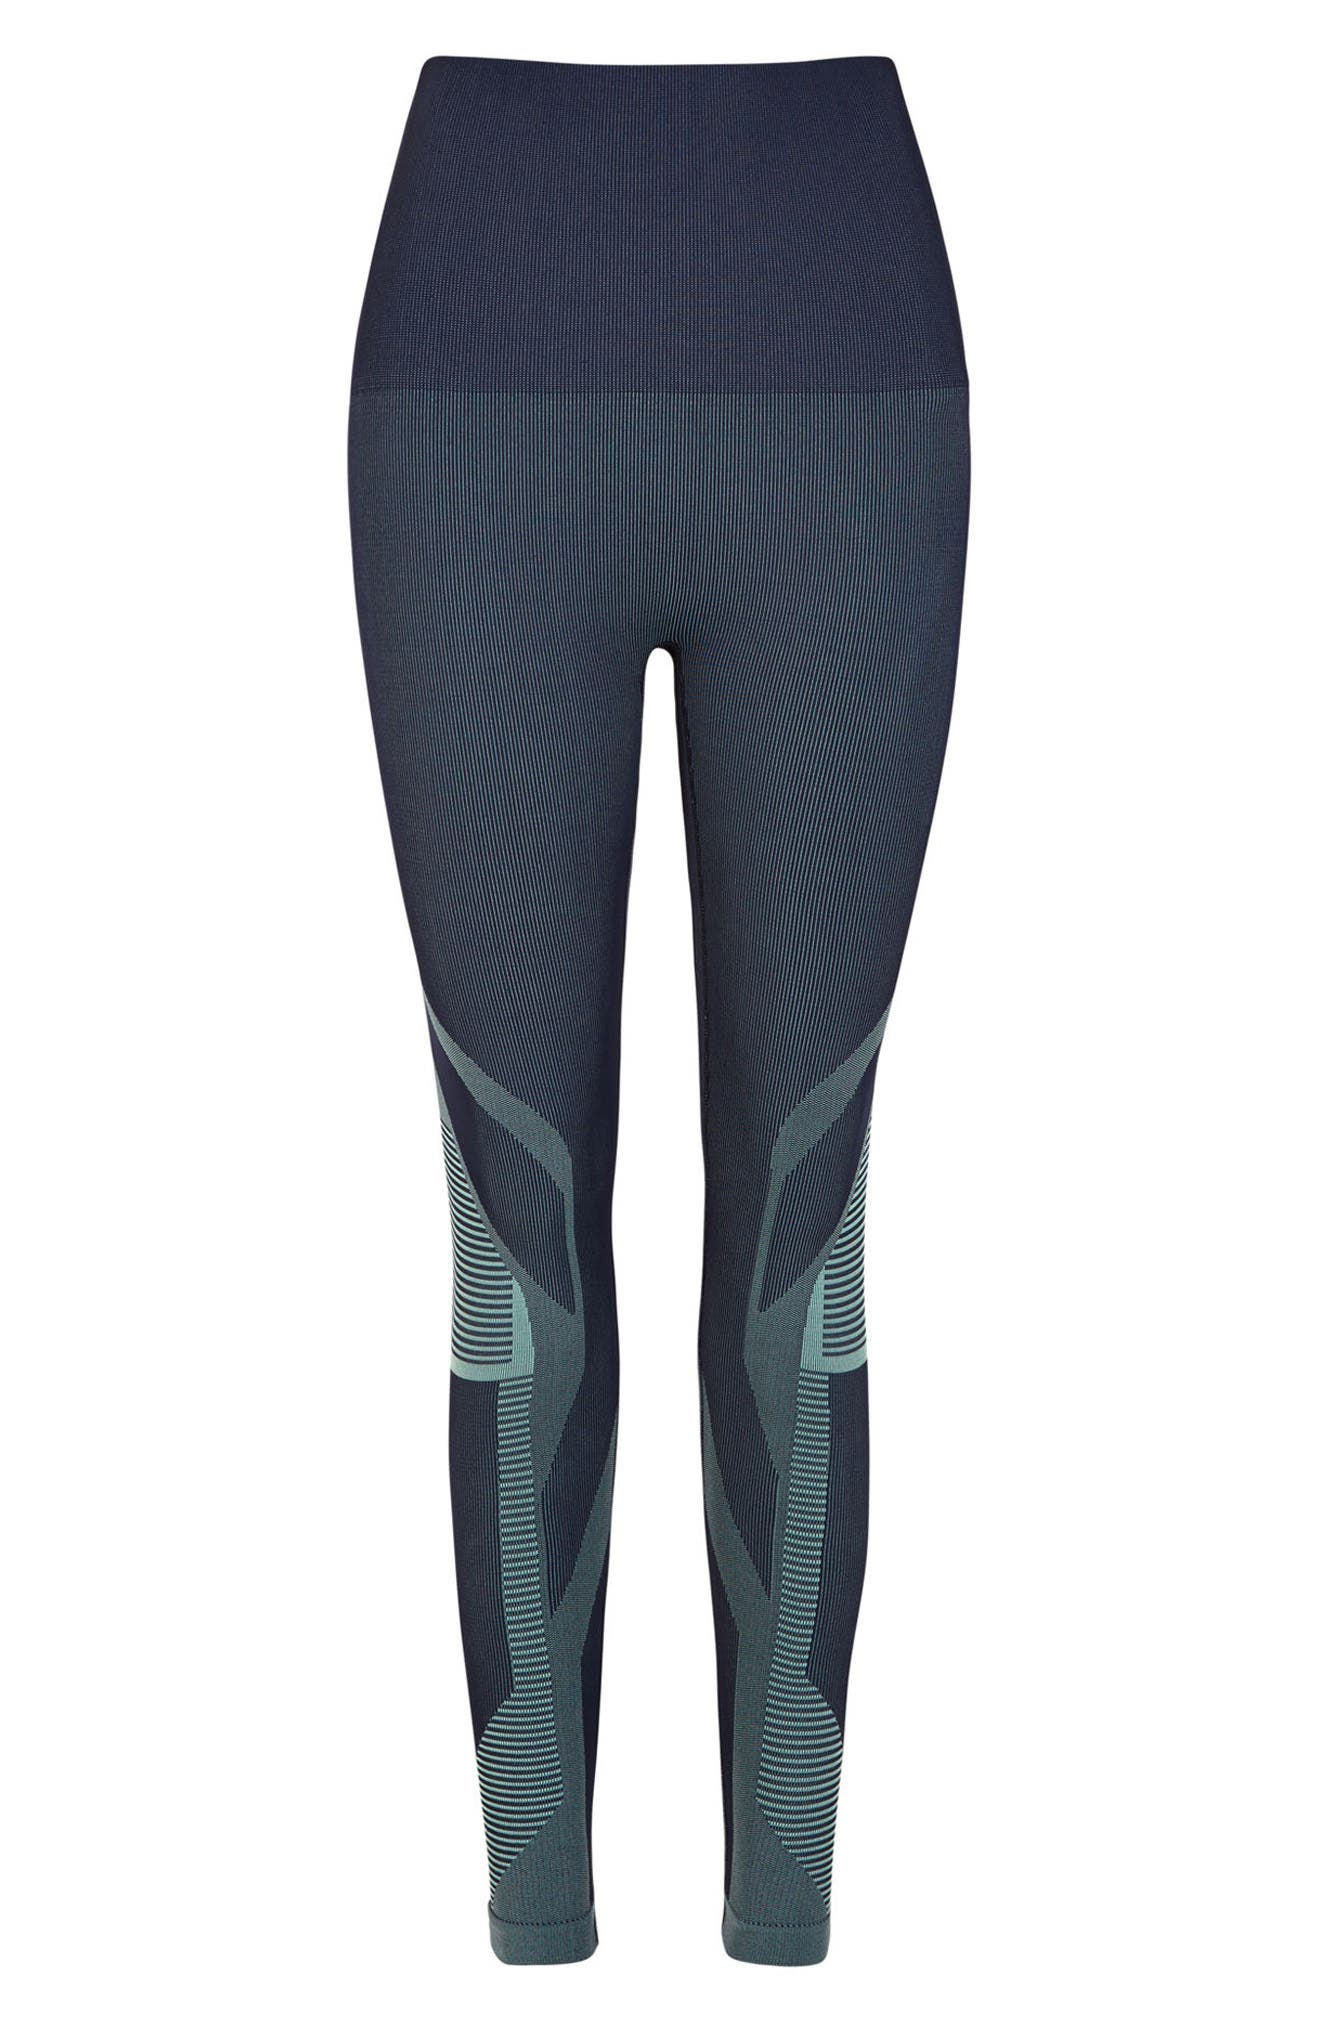 Spectrum High Waist Seamless Leggings,                             Alternate thumbnail 6, color,                             Deep Sea Navy